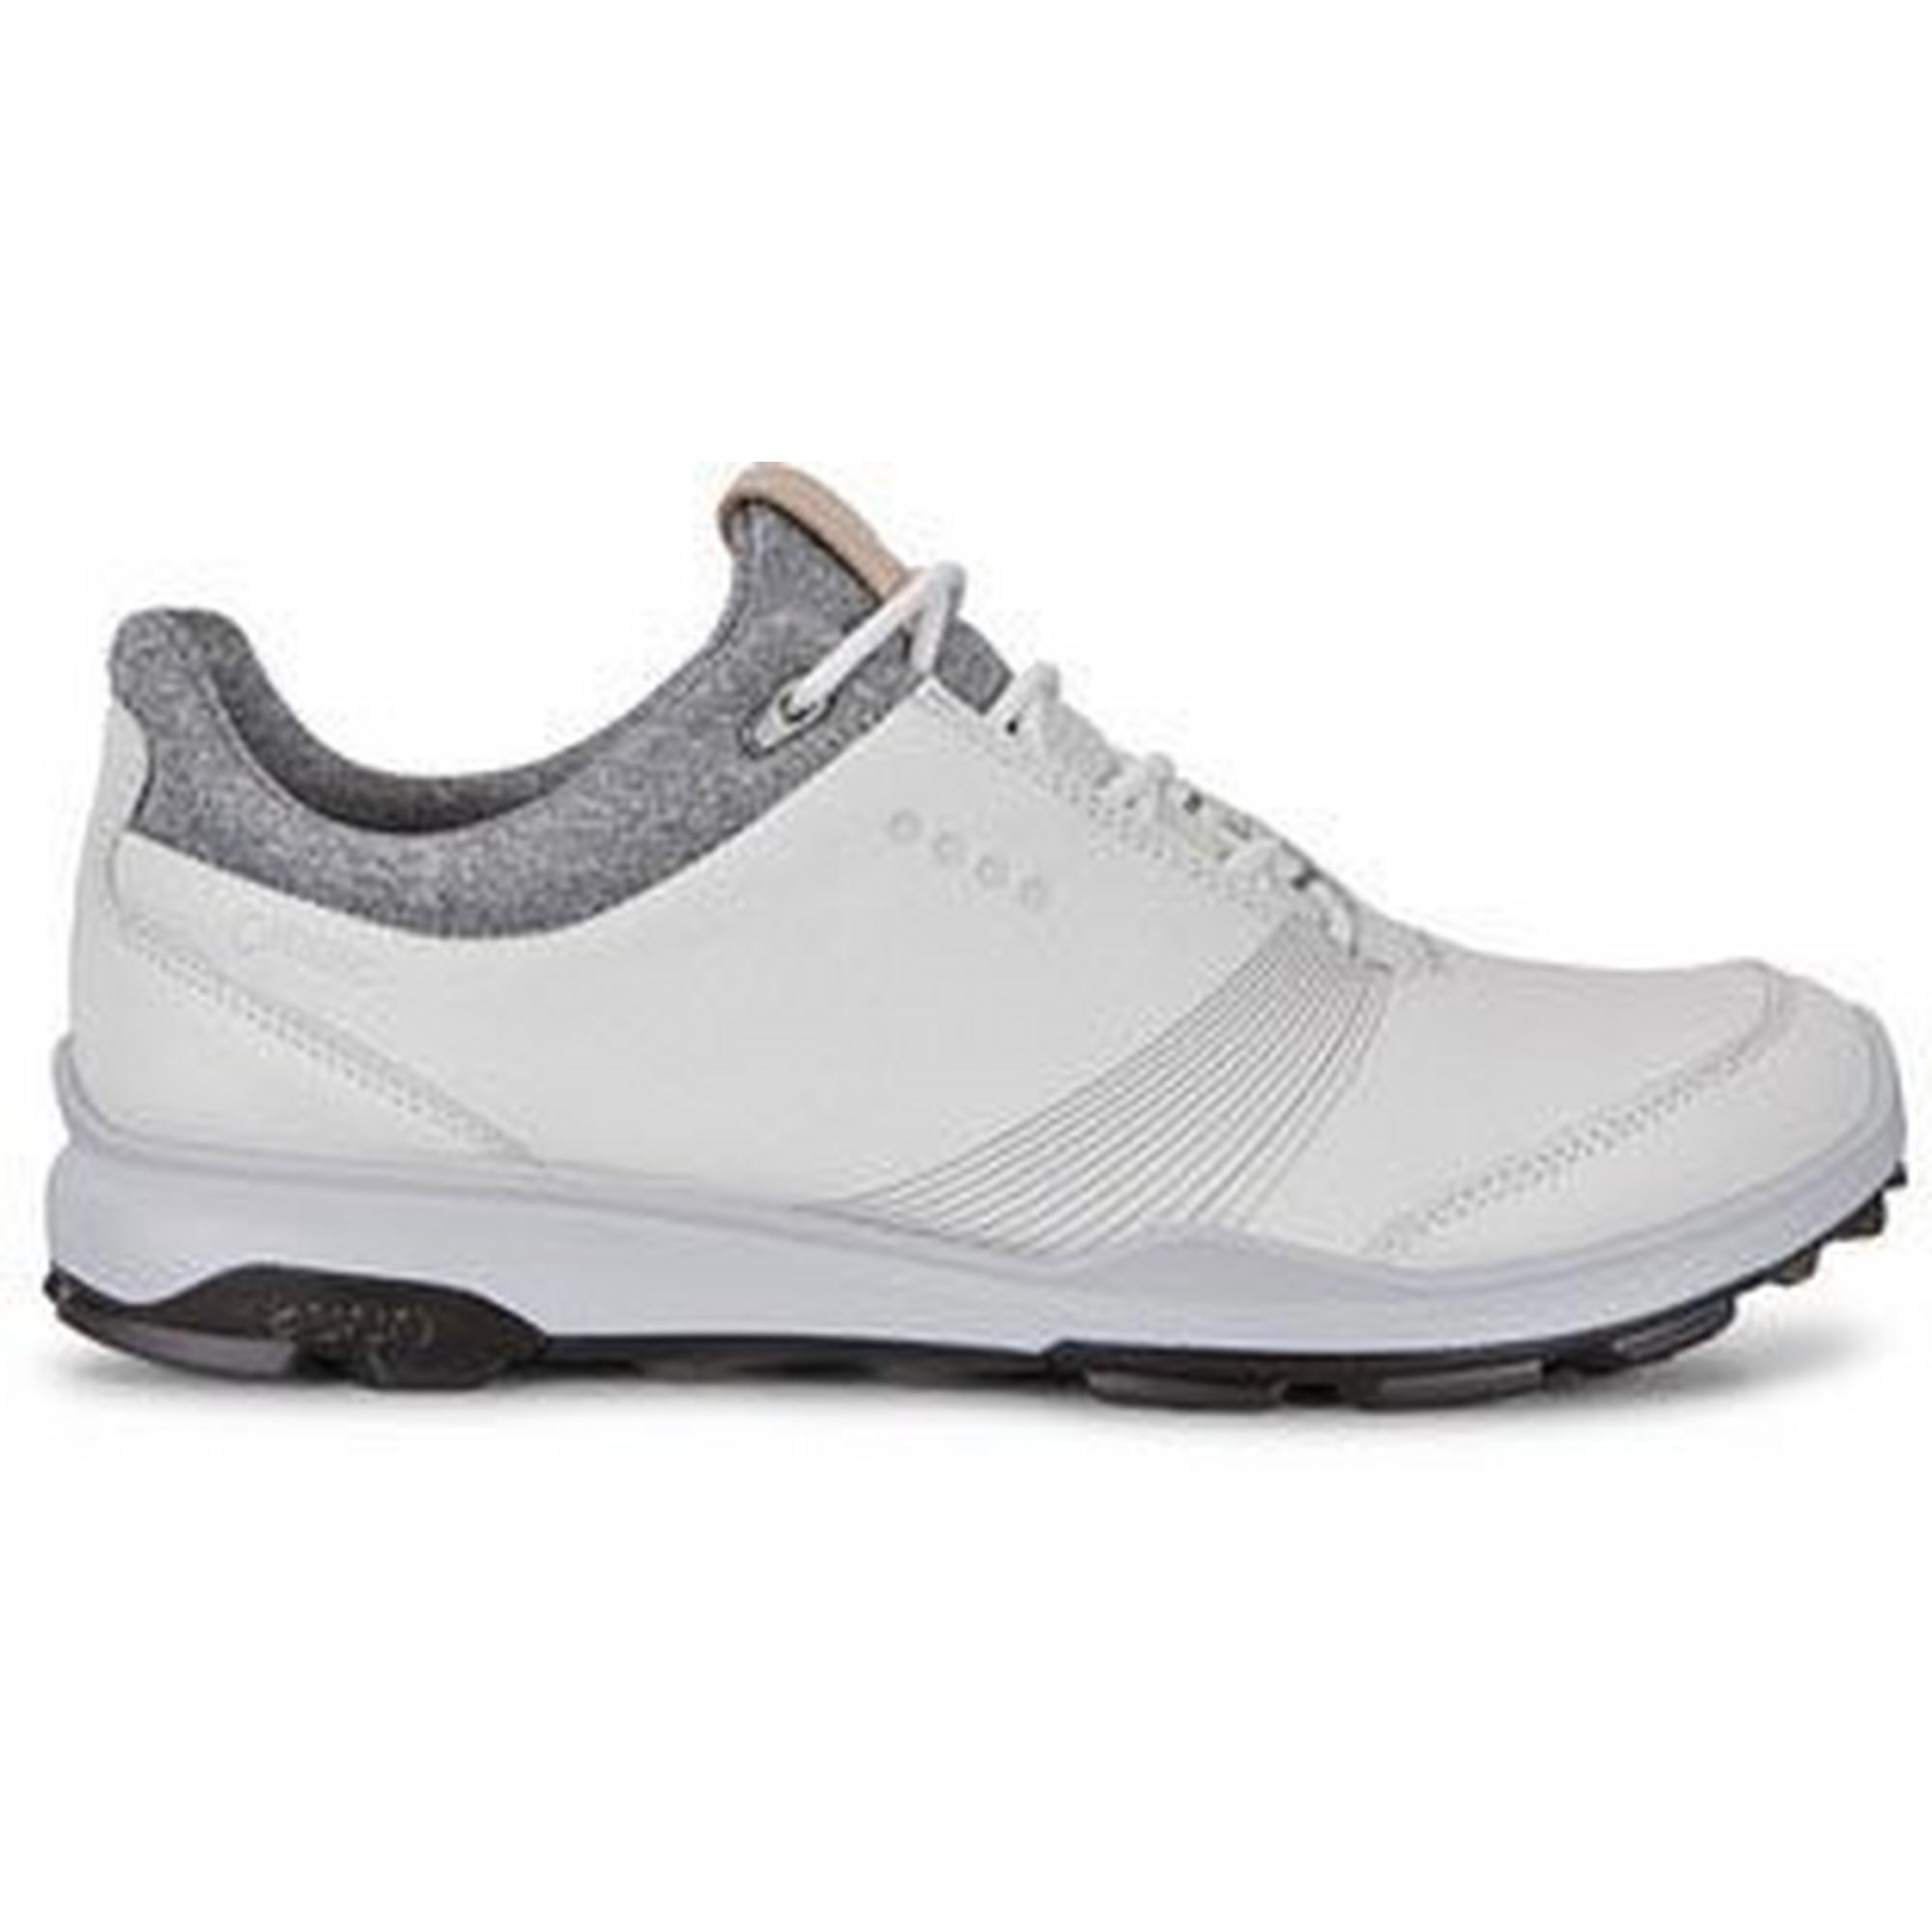 Women's Goretex Biom Hybrid 3 Spikeless Golf Shoe – White/Black